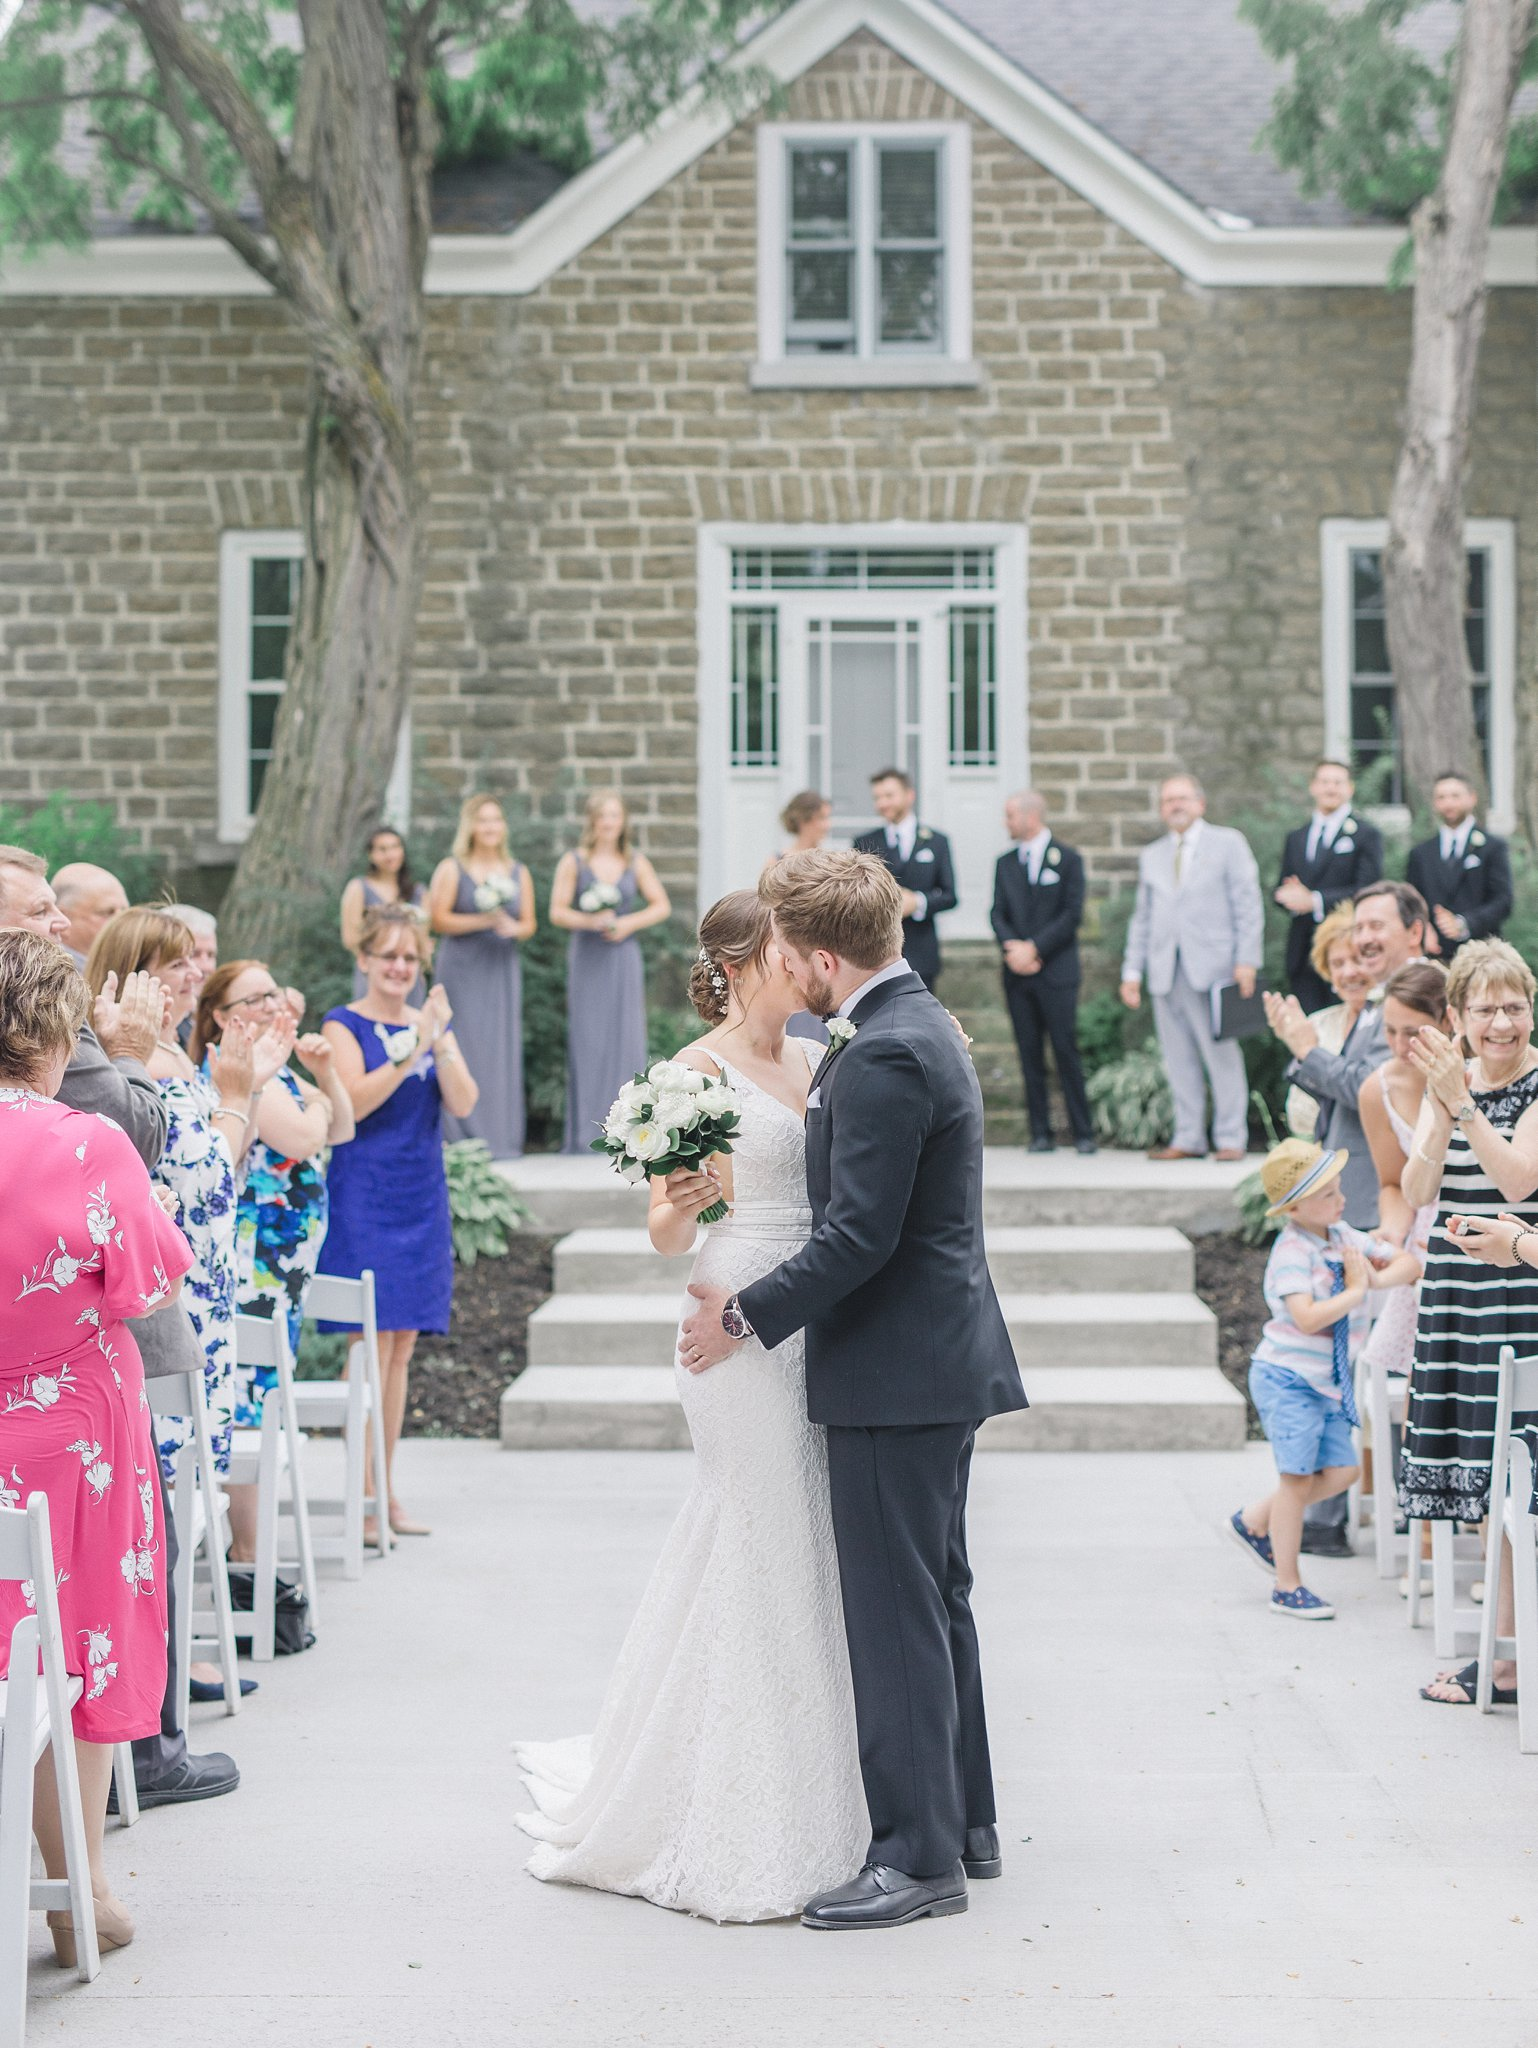 Kiss down the aisle married at Stonefields, Amy Pinder Photography